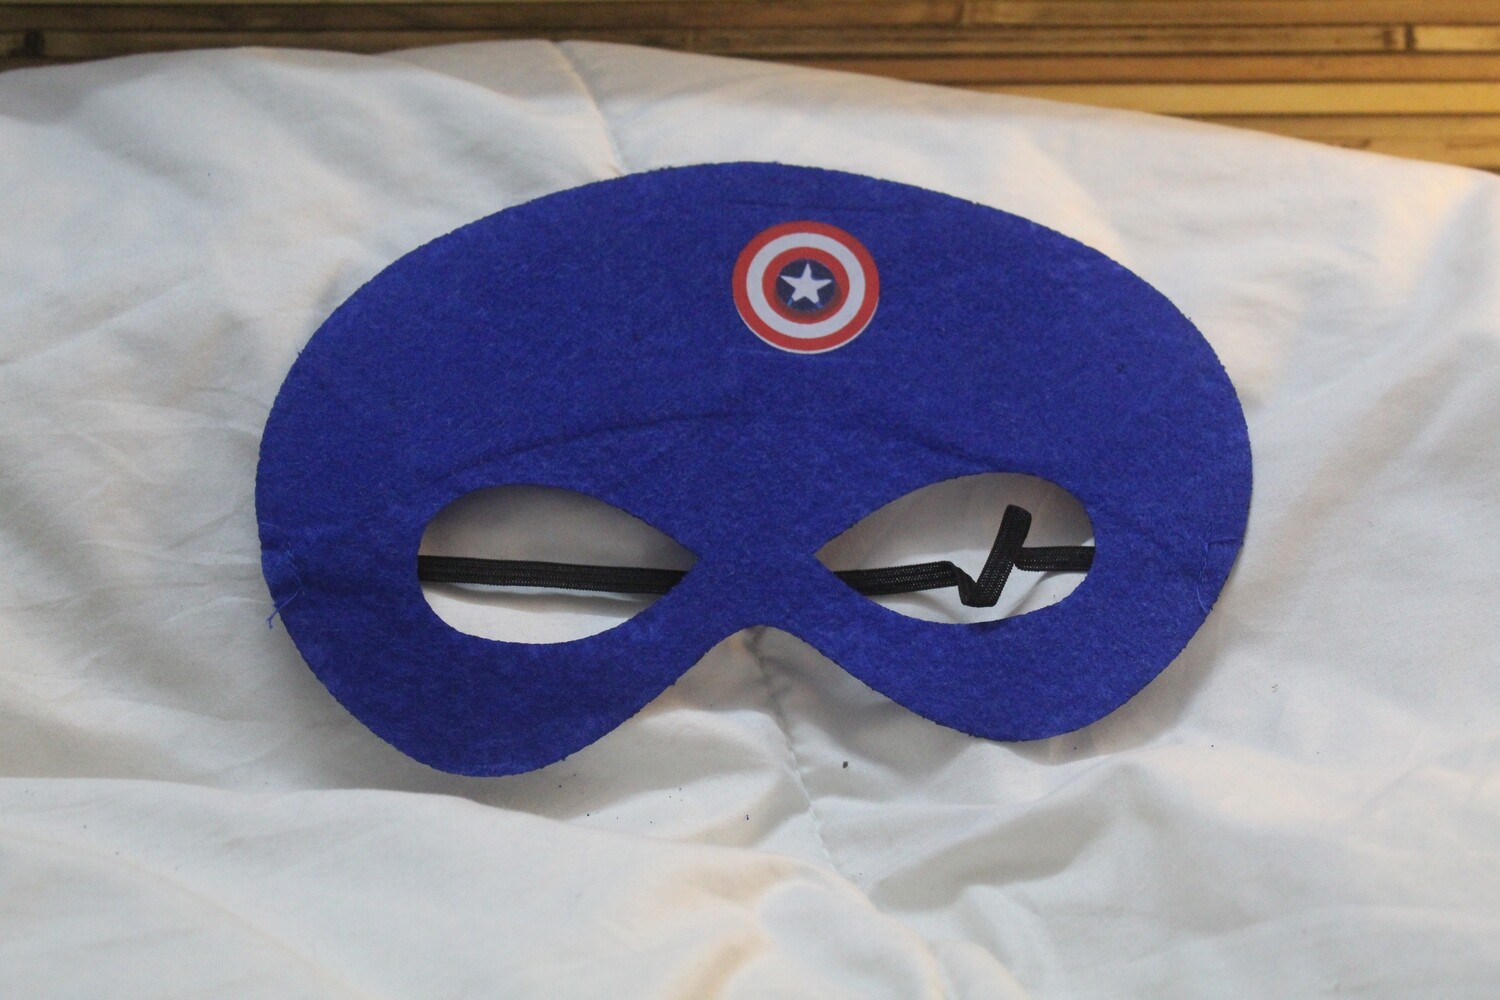 Captain America Eye Mask with Elasticized Band